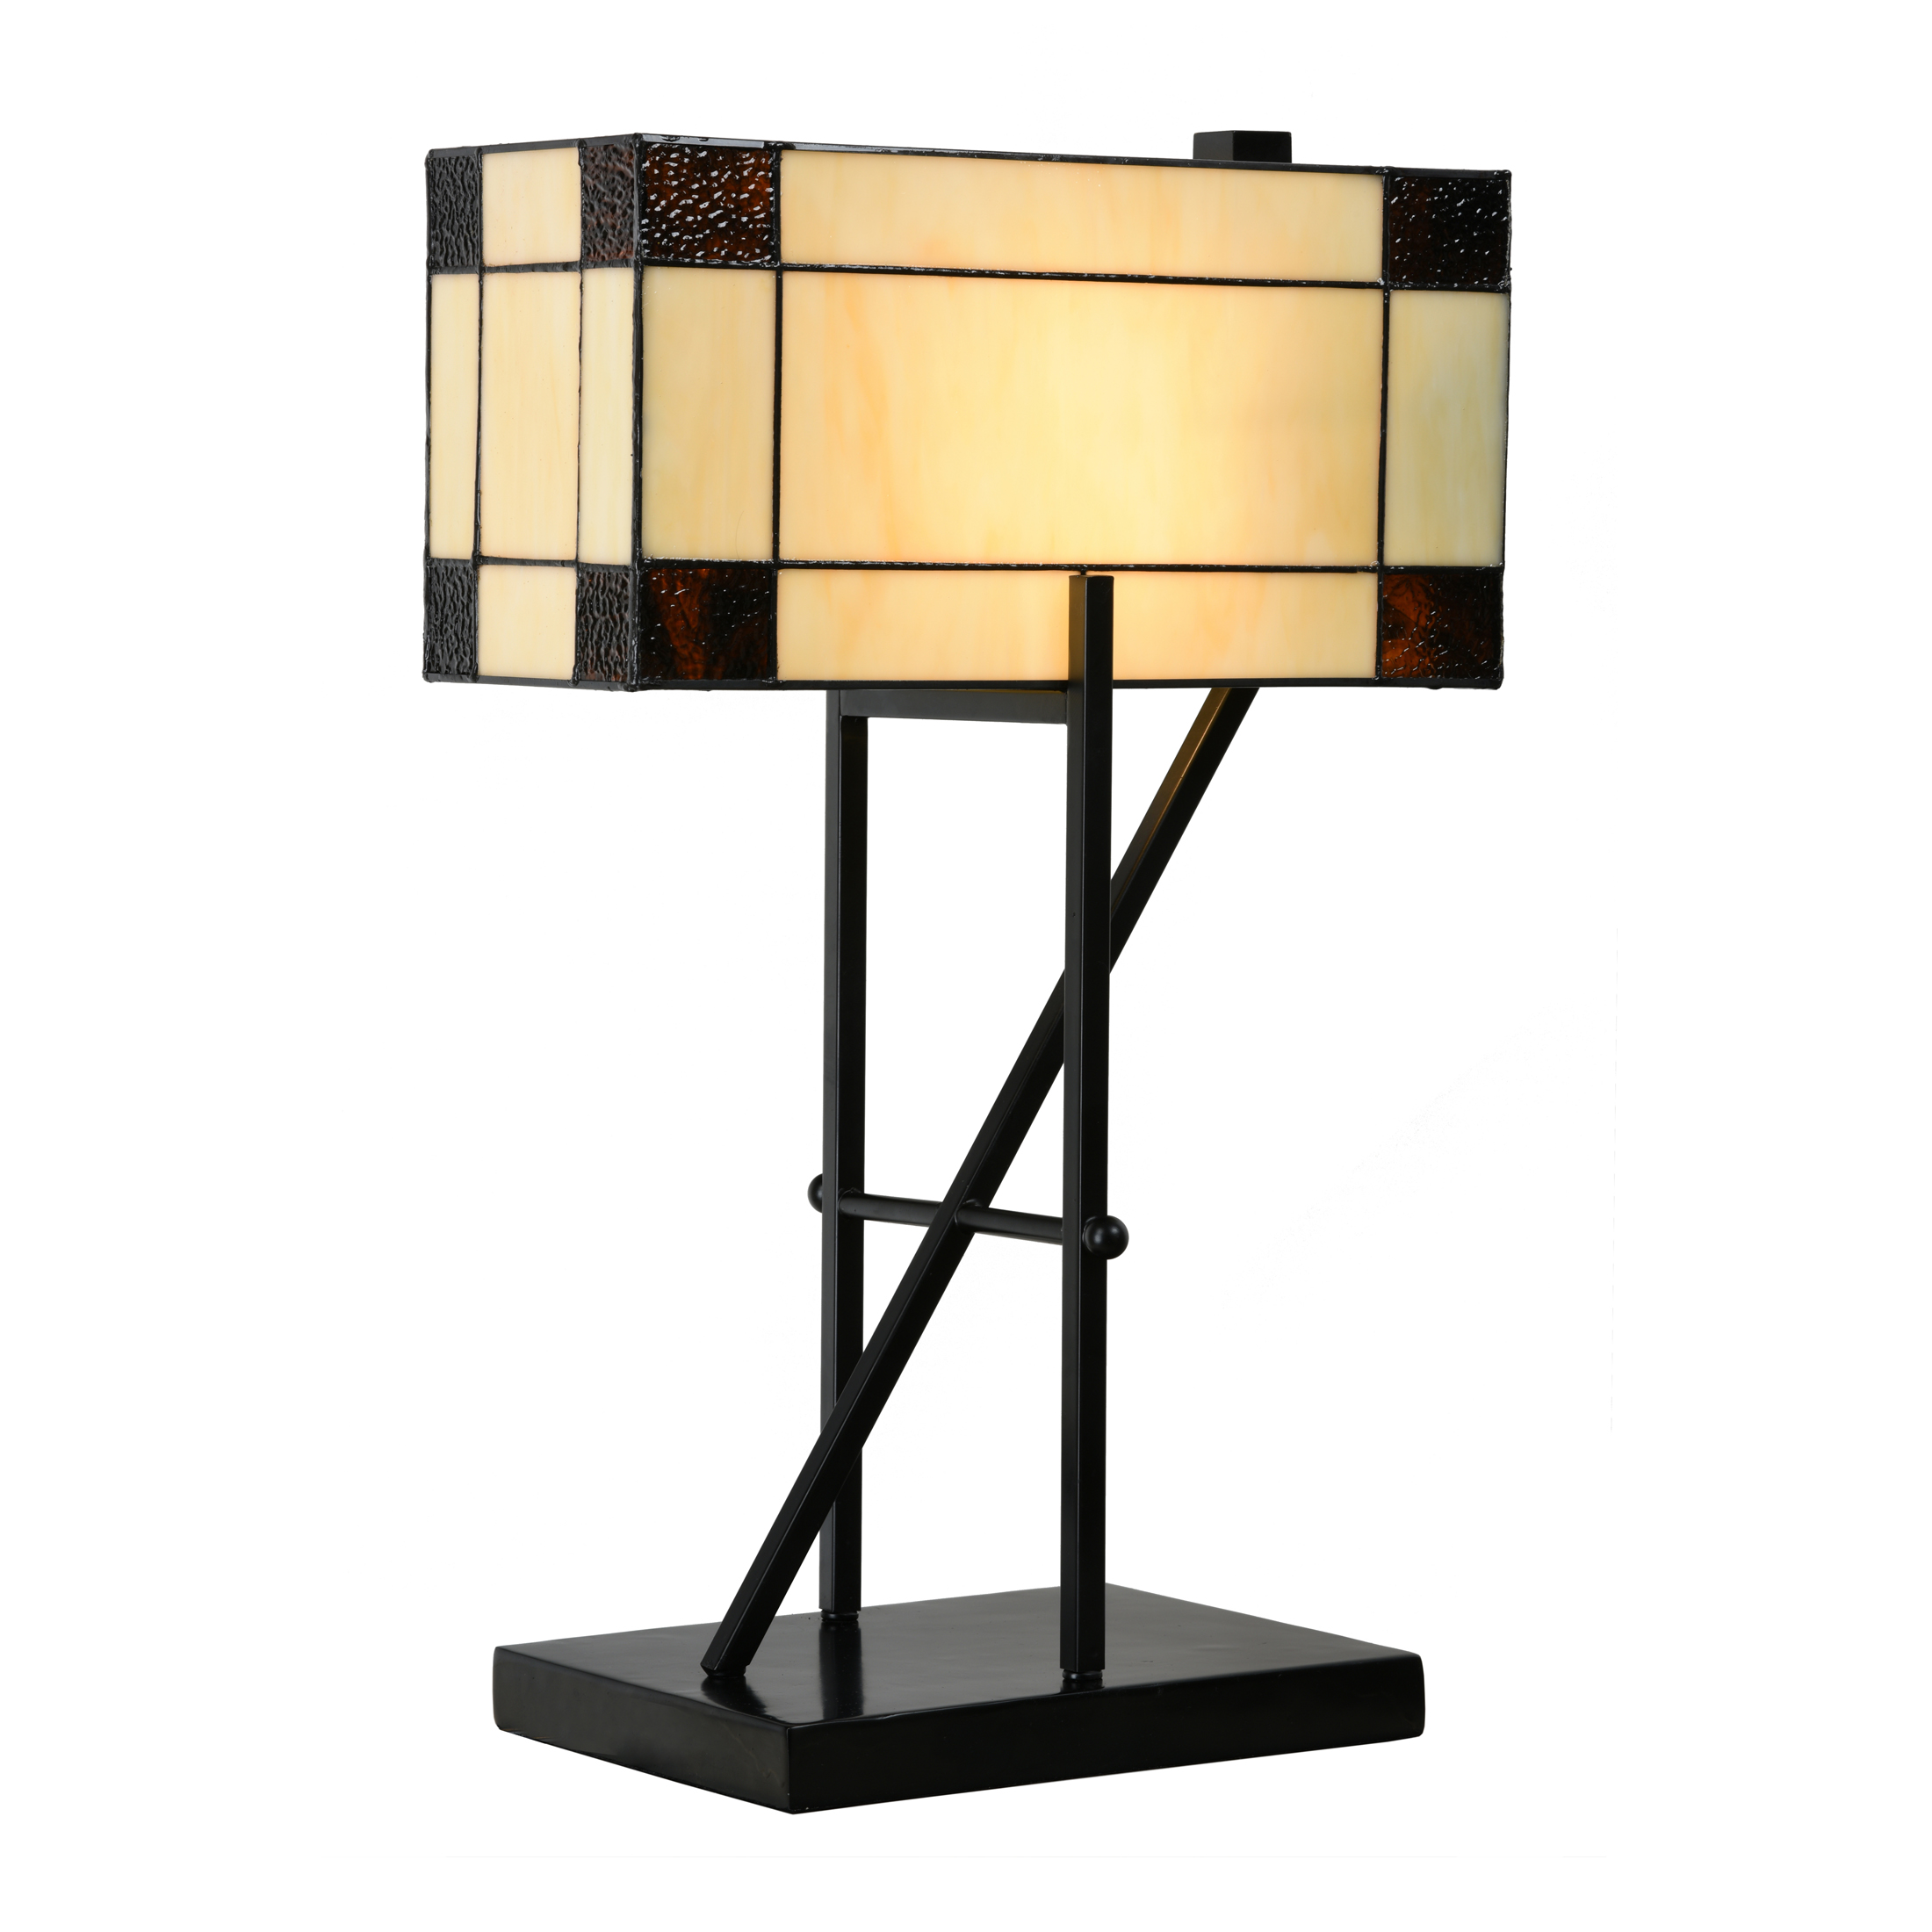 lamps lamp brass the categories of buy design deco art antique table